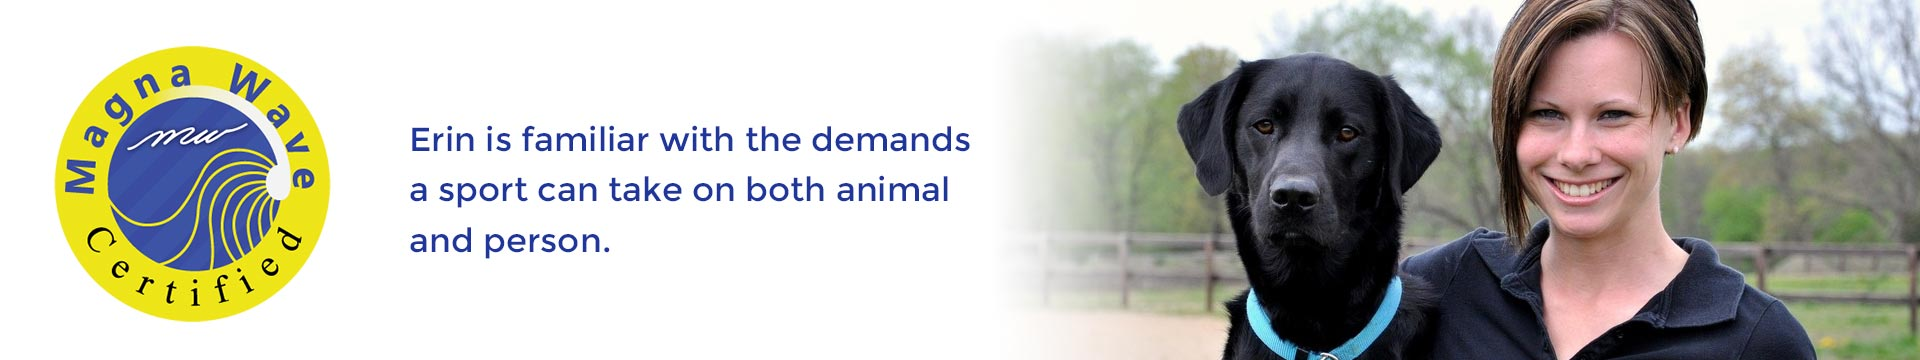 Erin is familiar with the demands a sport can take on both animal and person.